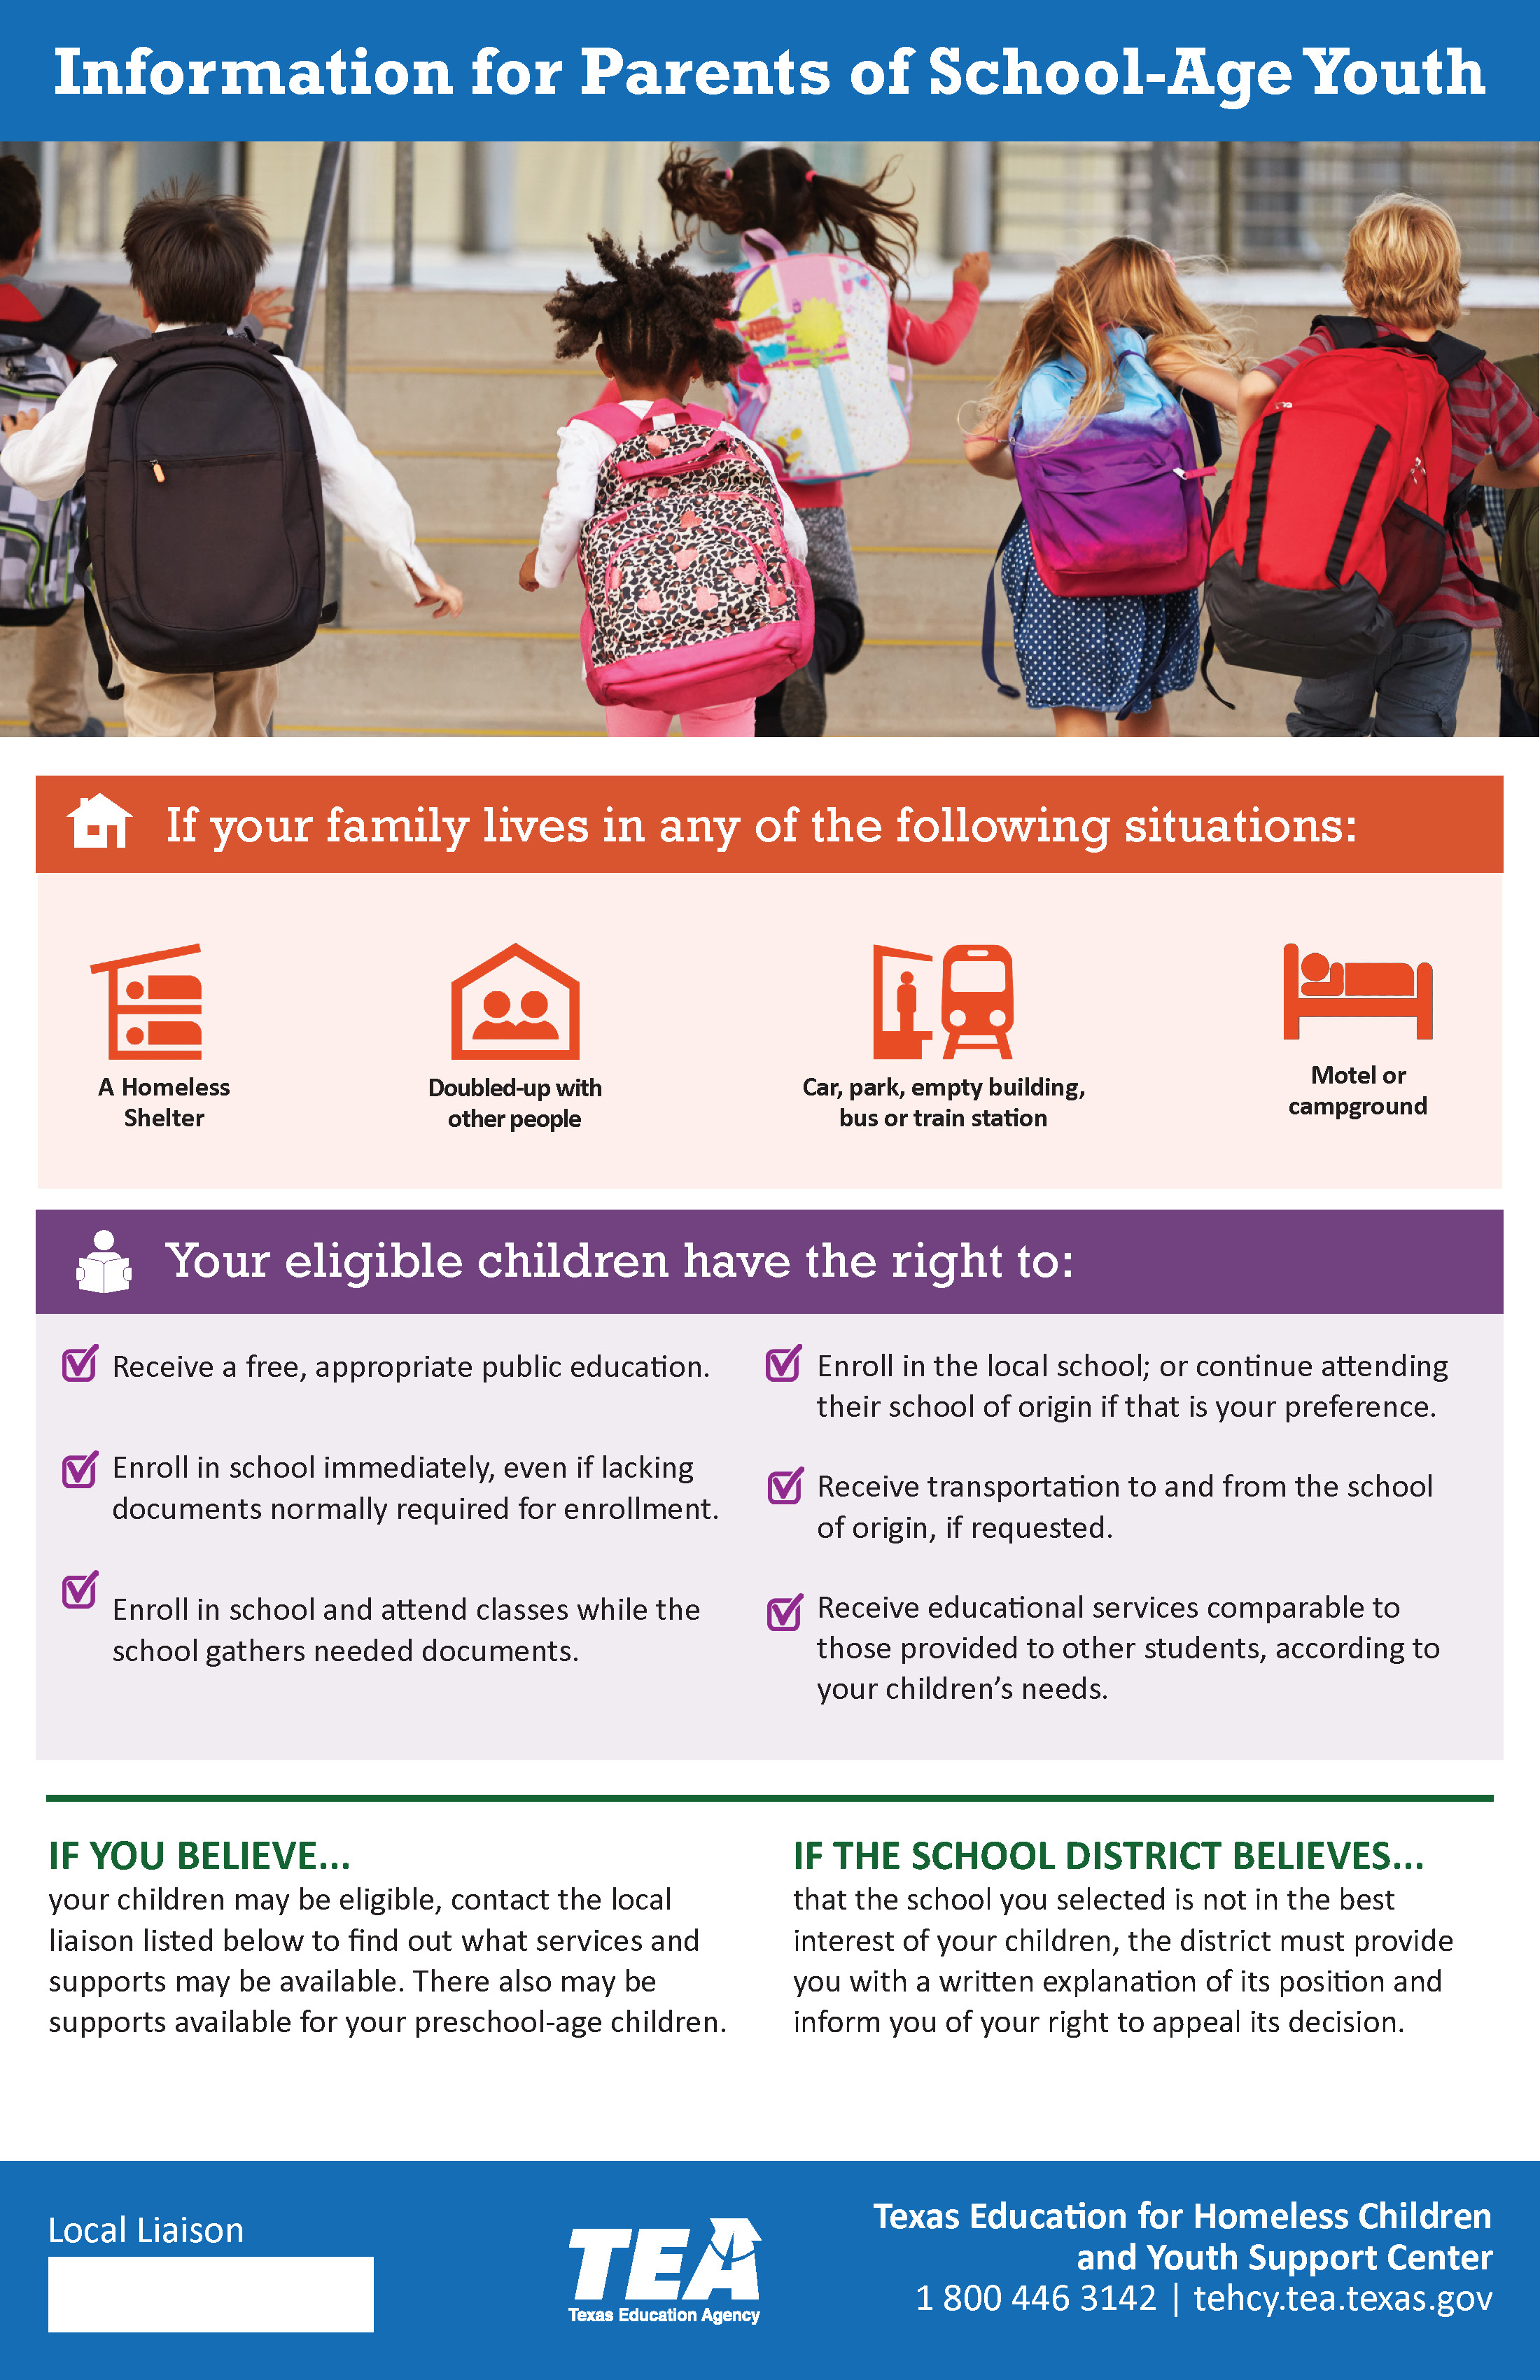 INFORMATION FOR PARENTS OF SCHOOL-AGE YOUTH